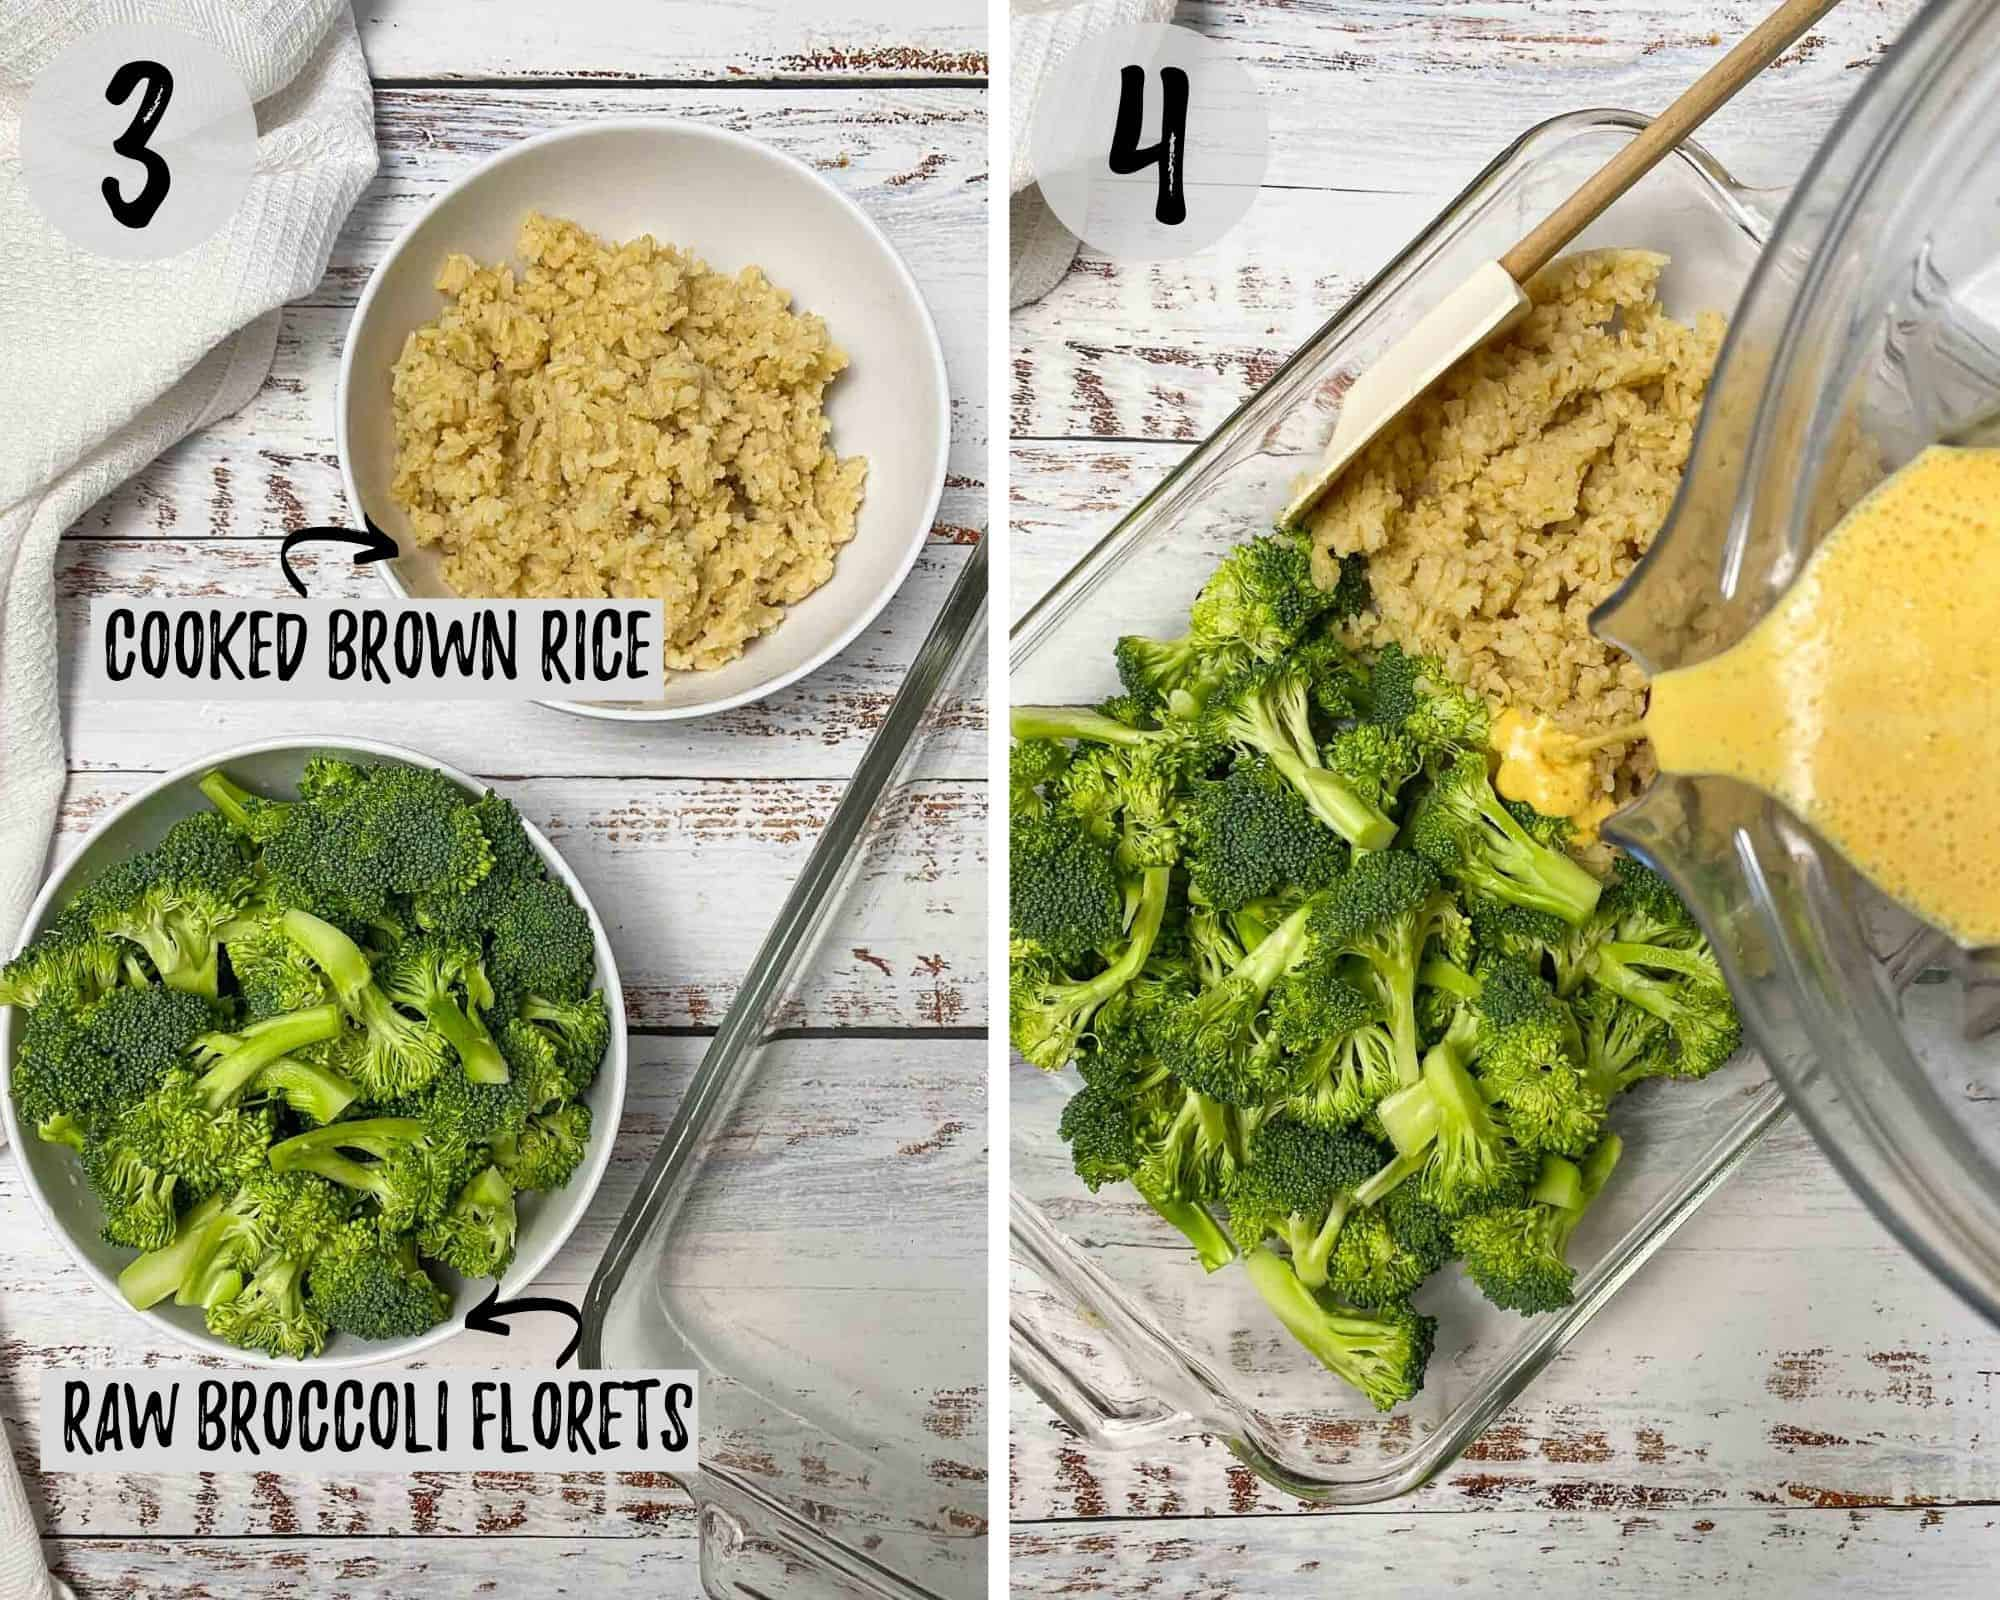 pouring vegan cheese sauce into dish with broccoli and rice